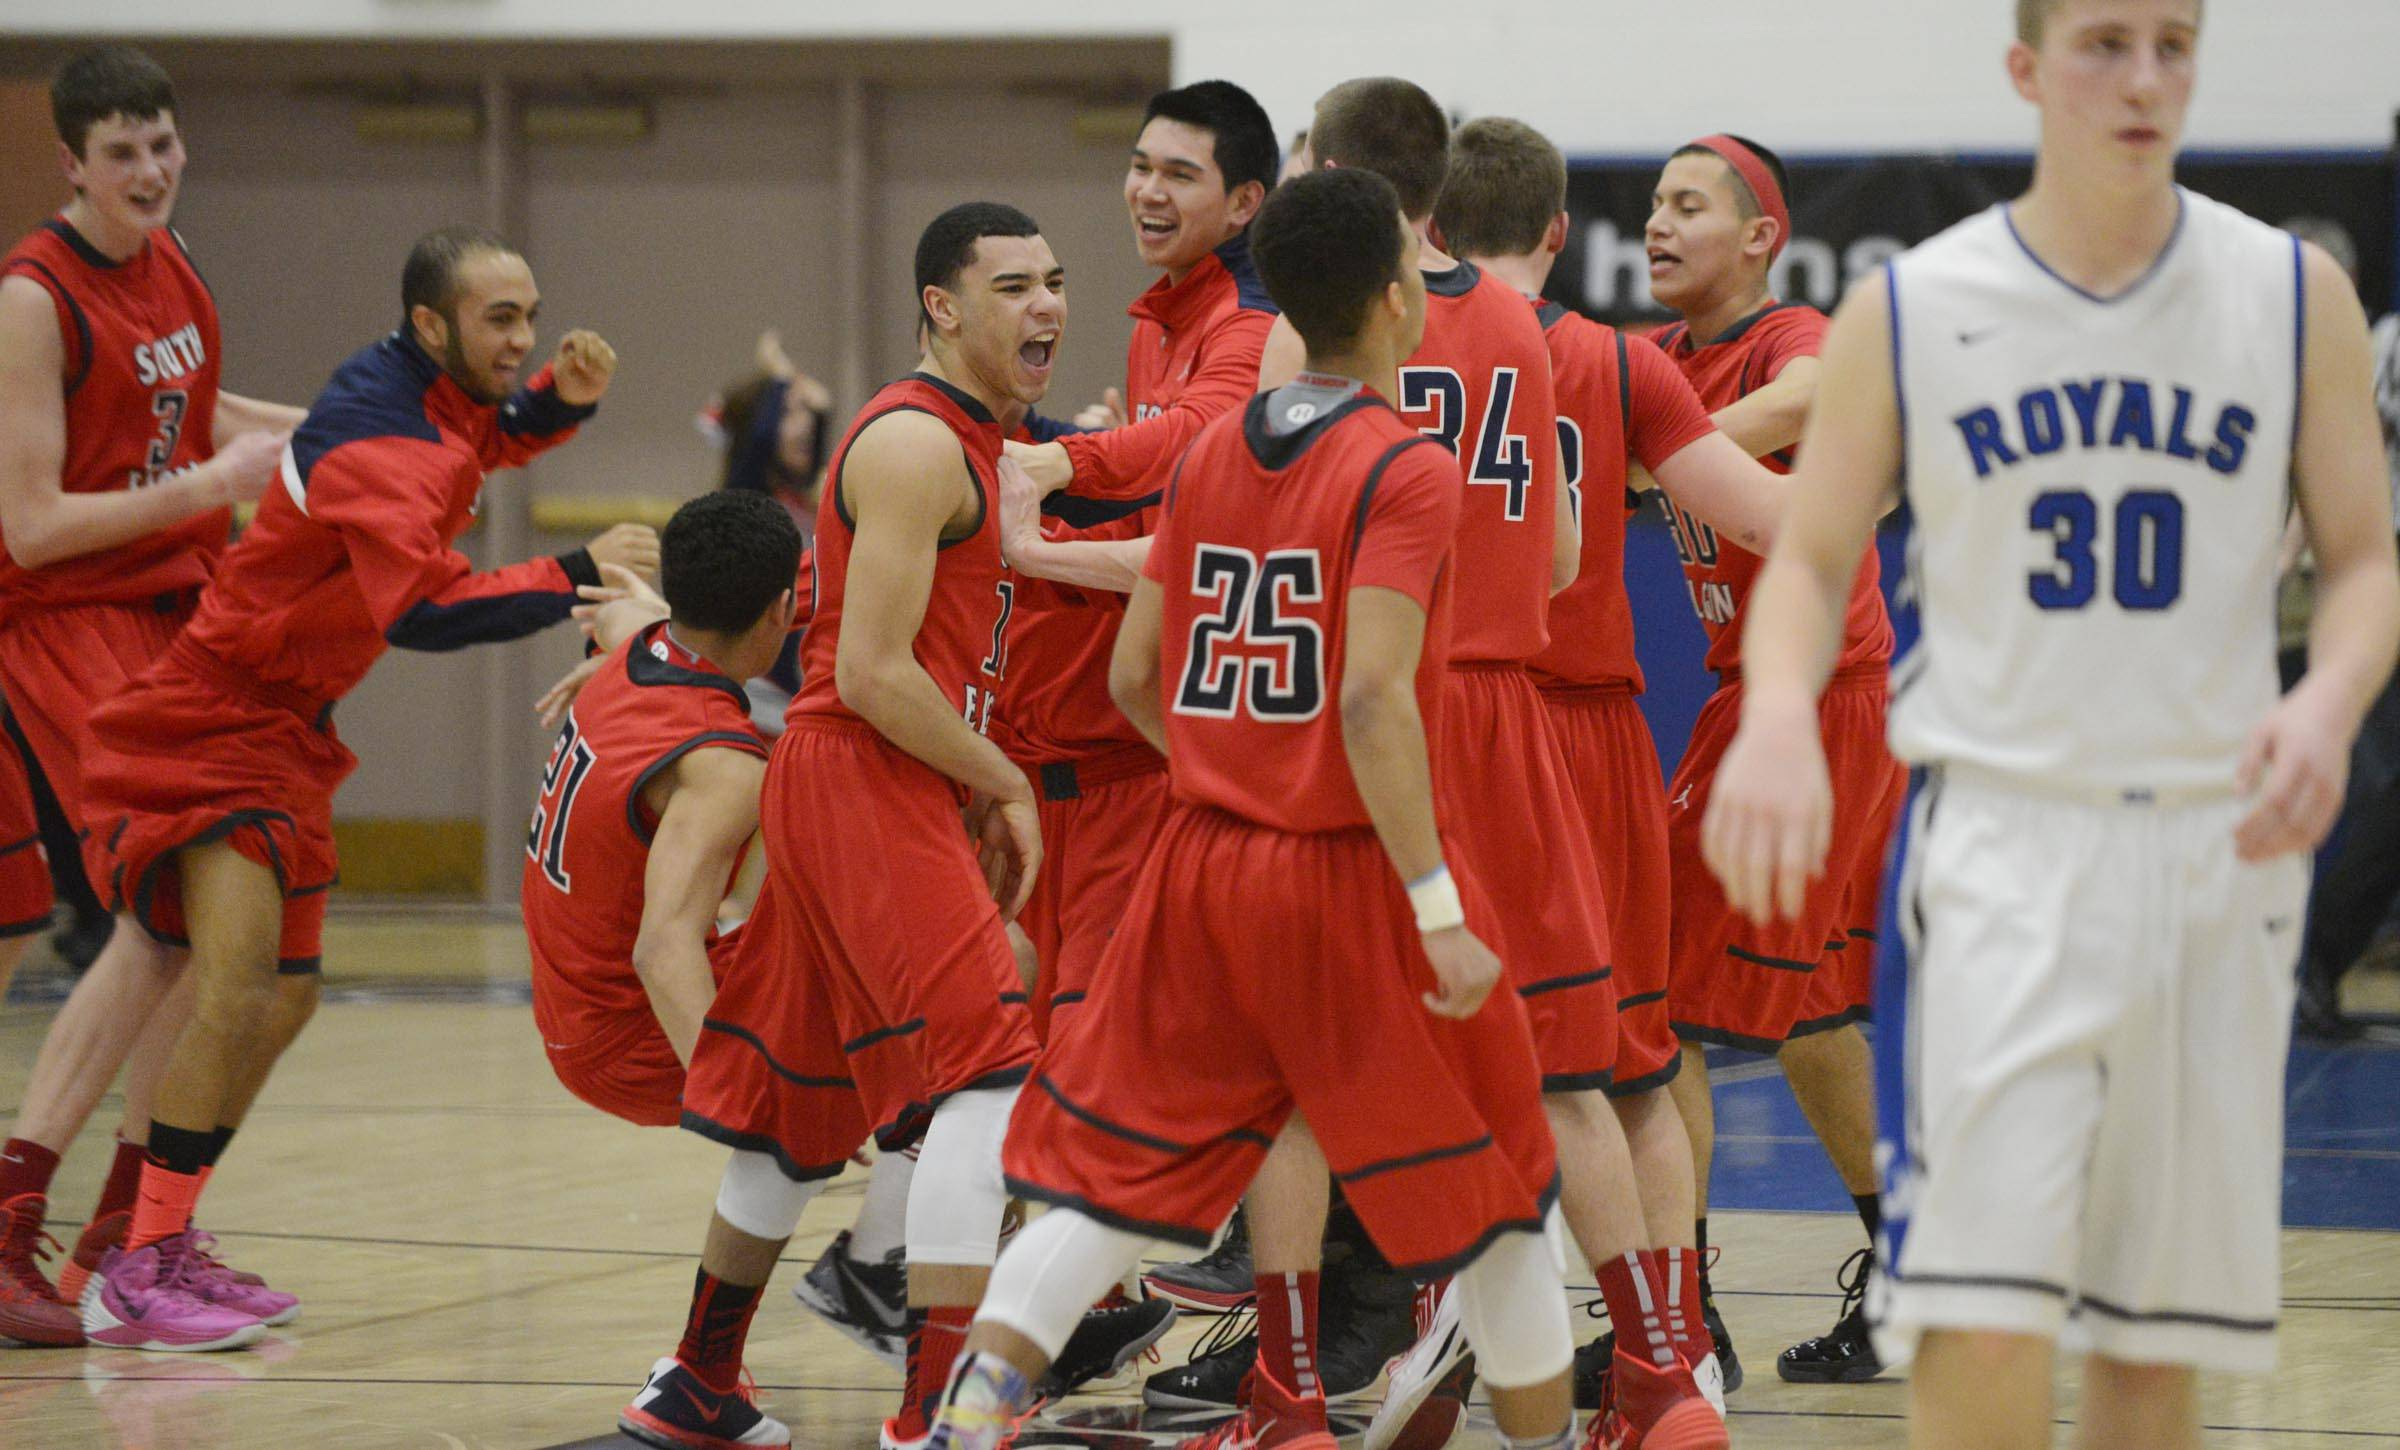 Images: Larkin vs. South Elgin boys basketball